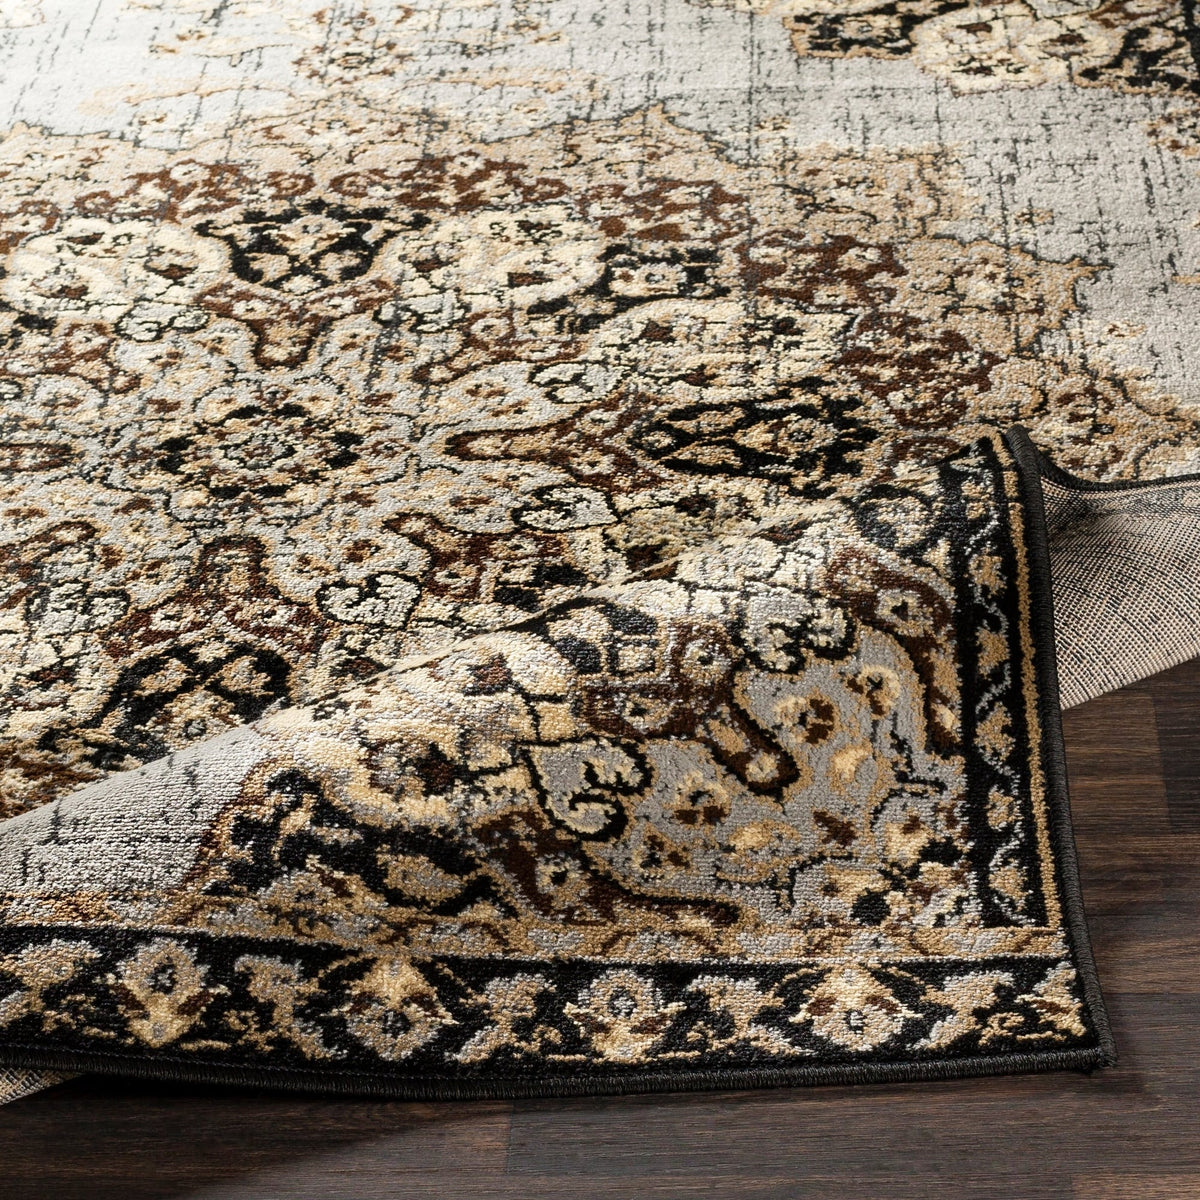 Floral Medallion Traditional Gray Brown Beige Area Rug